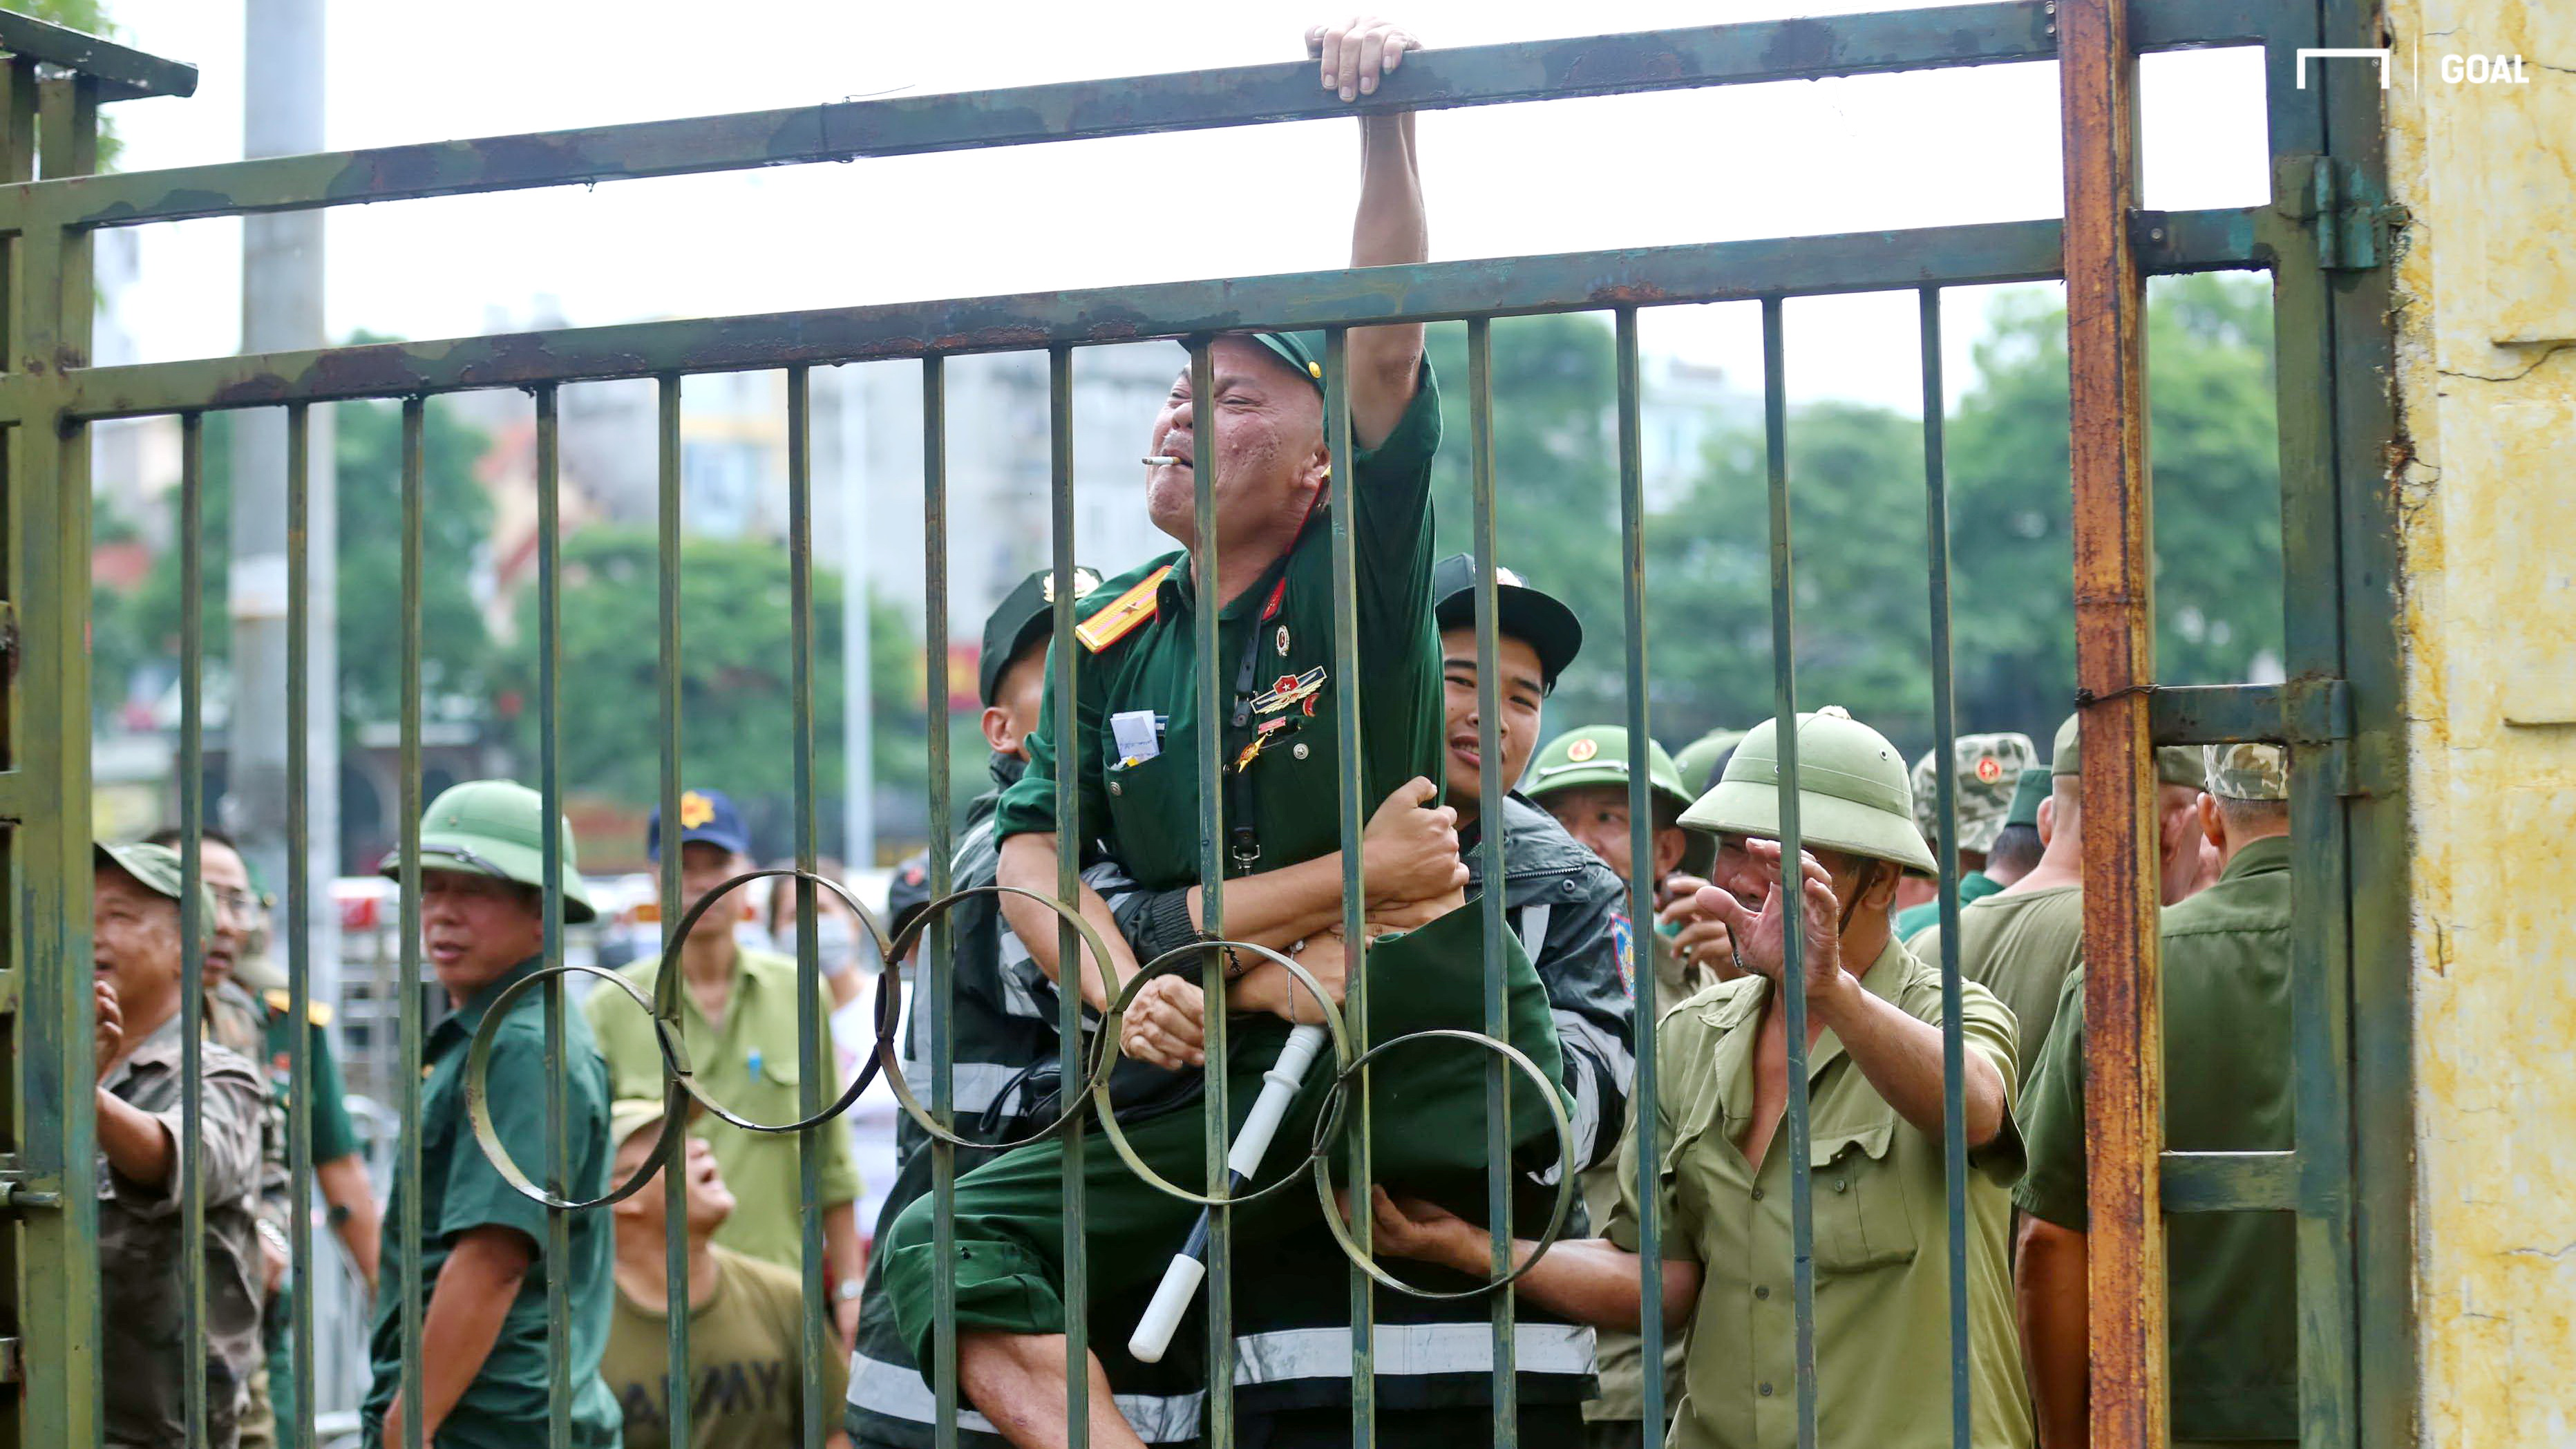 Vietnamese veterans buying ticket, prior to Vietnam vs Malaysia - World Cup 2022 qualifiers